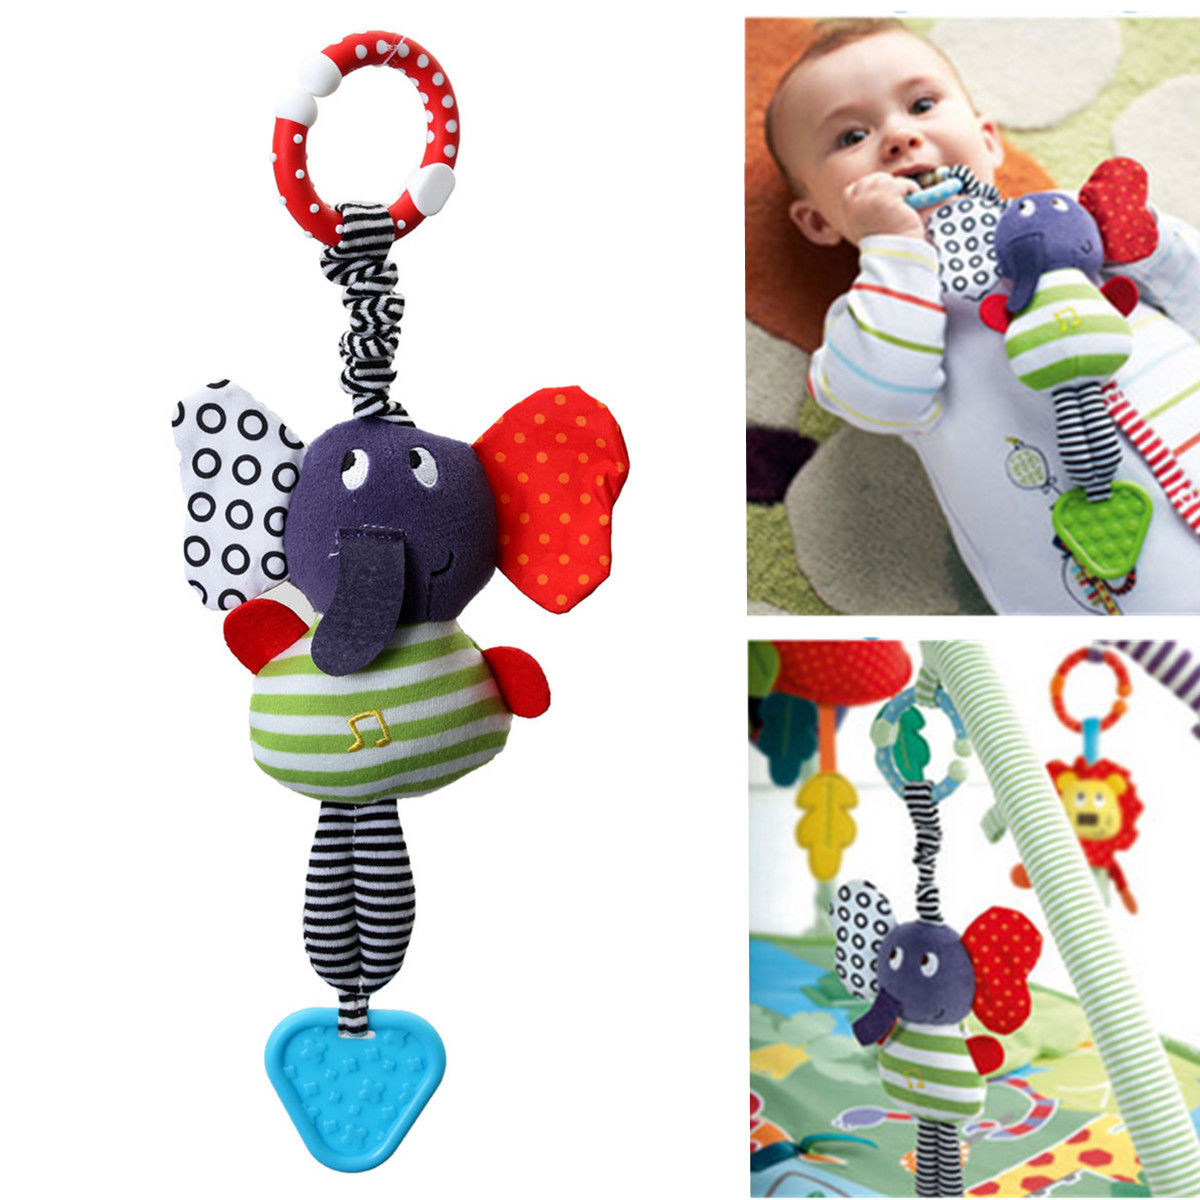 Cute Spiral Activity Stroller Car Seat Cot Hanging Baby play Toys Rattles Infant